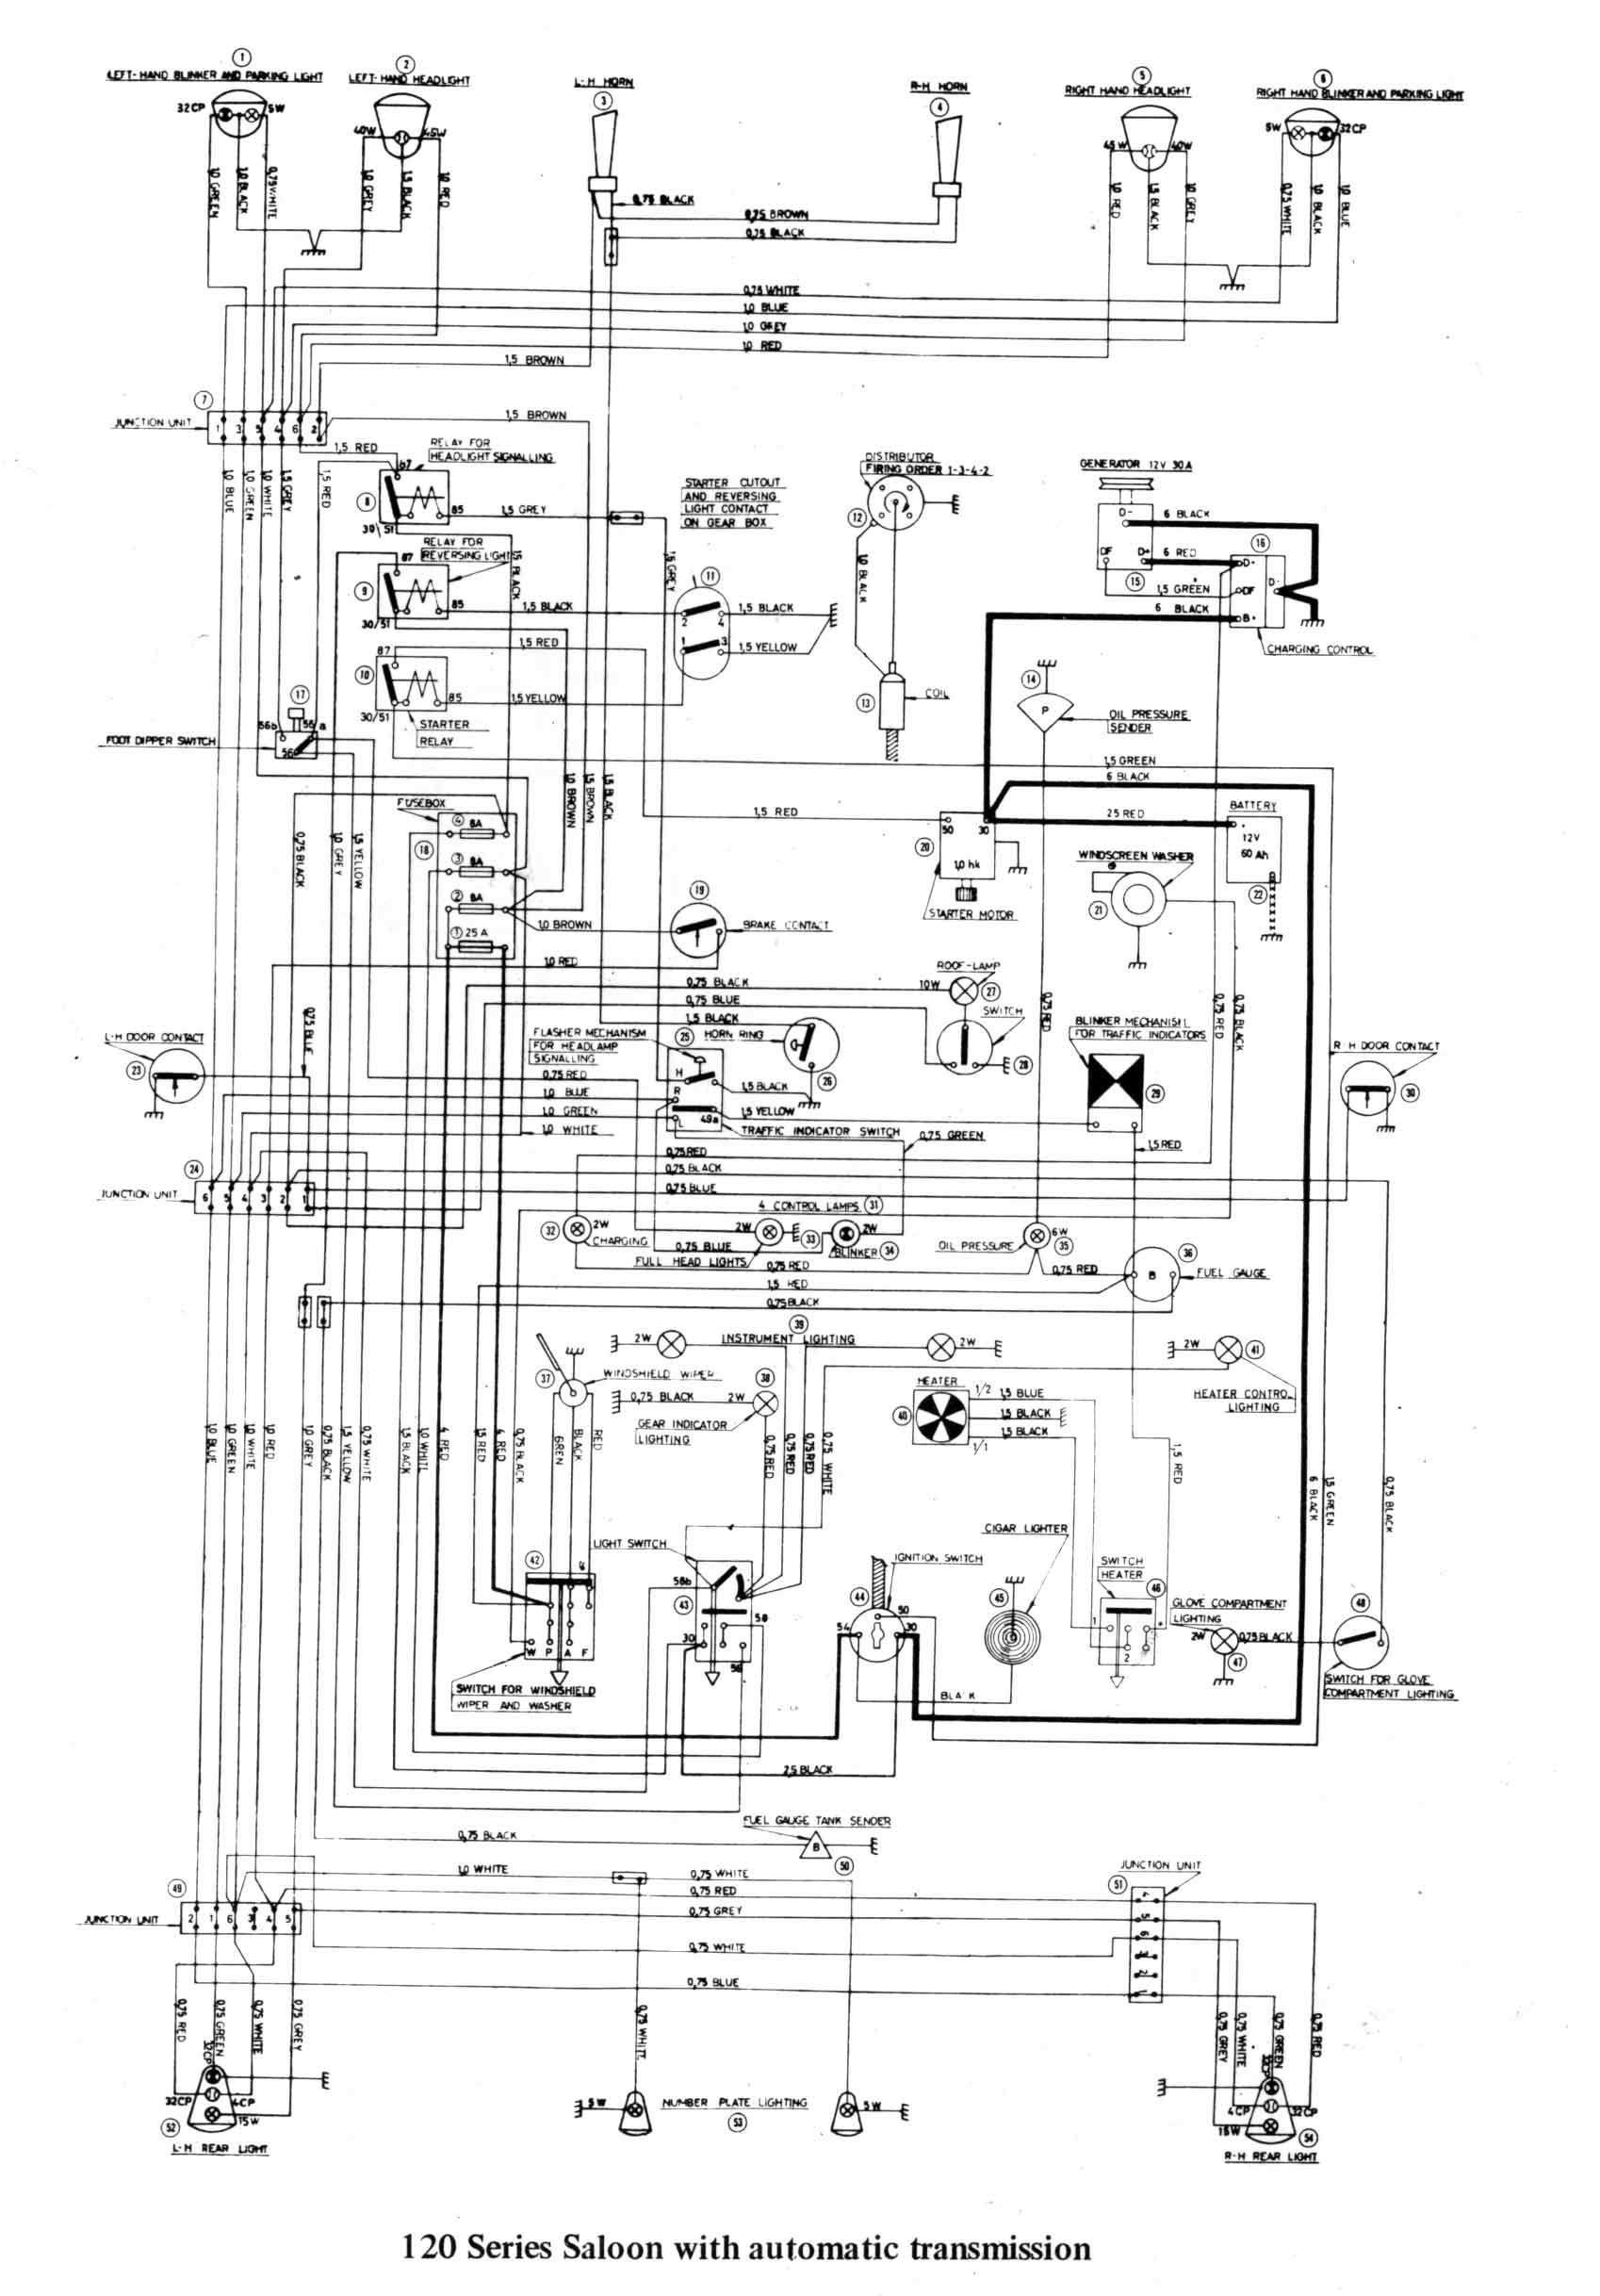 sauer danfoss joystick wiring diagram free wiring diagram